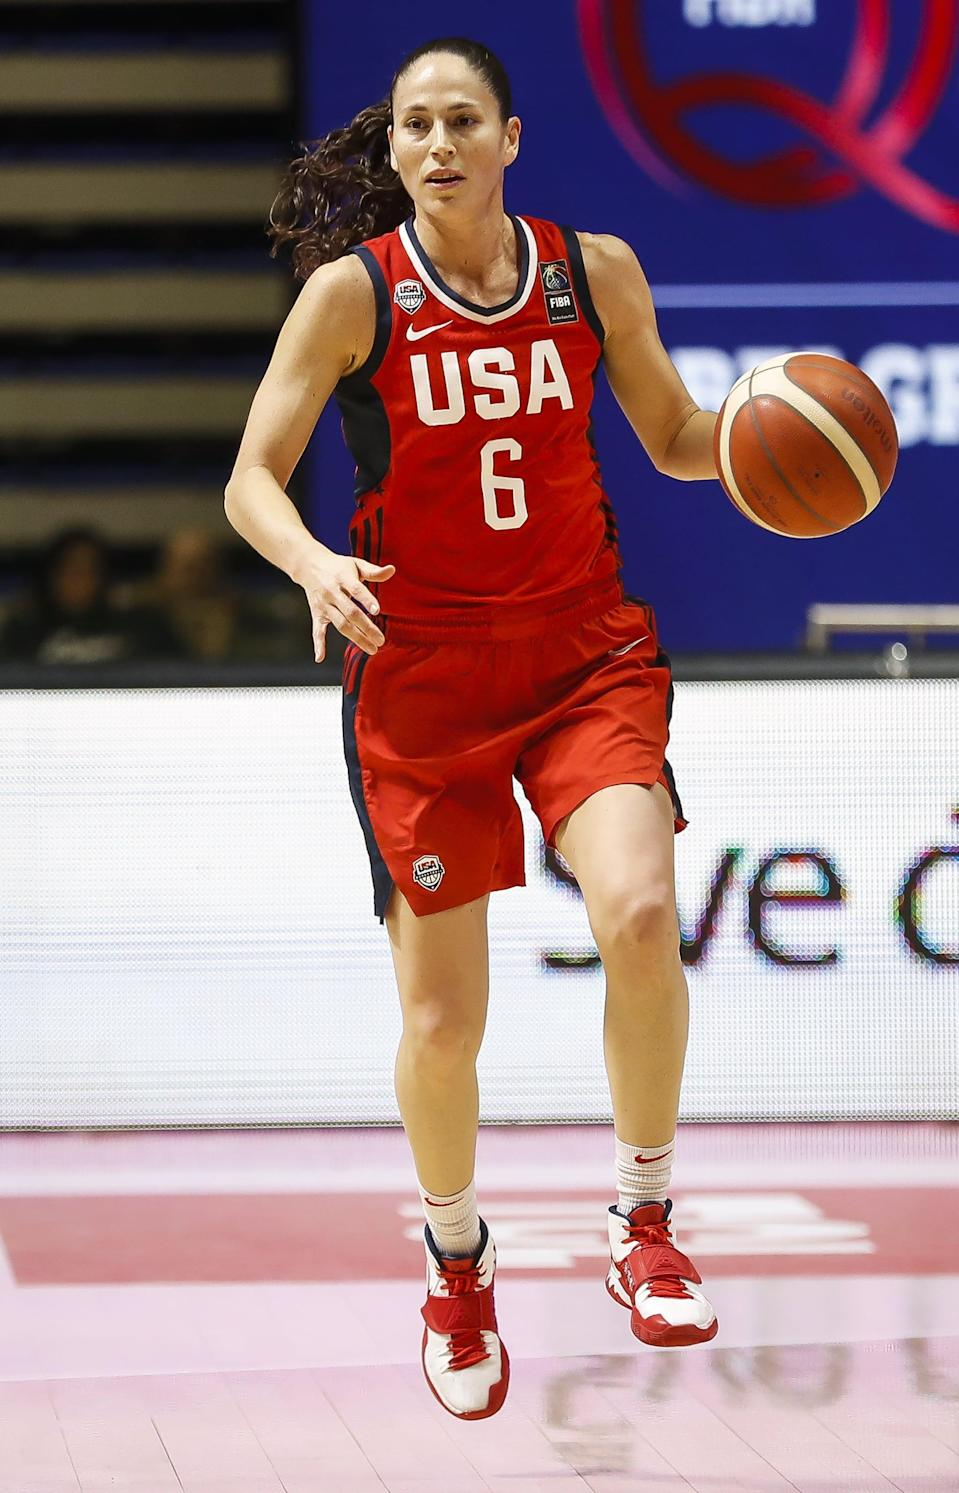 """<p>Basketball star Sue Bird has won multiple championships in the NCAA, WNBA, and EuroLeague, and holds four Olympic gold medals to her name. Famously private, Bird <a href=""""http://www.espn.com/espnw/feature/20088416/wnba-all-star-sue-bird-ready-let-in"""" class=""""link rapid-noclick-resp"""" rel=""""nofollow noopener"""" target=""""_blank"""" data-ylk=""""slk:went public with her sexuality"""">went public with her sexuality</a> in a 2017 ESPNW feature, saying, """"I don't feel like I've not lived my life. I think people have this assumption that if you're not talking about it, you must be hiding it, like it's this secret. That was never the case for me . . . It's happening when it's happening because that's what feels right . . . It's my journey.""""</p> <p>Bird has been dating Megan Rapinoe since 2016, and has said that <a href=""""https://www.seattletimes.com/sports/storm/seattle-meet-your-sports-power-couple-sue-bird-and-megan-rapinoe/"""" class=""""link rapid-noclick-resp"""" rel=""""nofollow noopener"""" target=""""_blank"""" data-ylk=""""slk:Rapinoe showed her the importance"""">Rapinoe showed her the importance</a> of publicly sharing her sexuality. """"Megan and I would have conversations about it, and she opened my eyes to another way of looking at it, which is that in today's time, in today's society, it's still important to kind of say it to make it the norm,"""" she told the <strong>Seattle Times</strong> in 2018. That same year, Bird and Rapinoe became the first same-sex couple to <a href=""""https://www.espn.com/video/clip/_/id/23816827"""" class=""""link rapid-noclick-resp"""" rel=""""nofollow noopener"""" target=""""_blank"""" data-ylk=""""slk:appear in ESPN's Body Issue"""">appear in ESPN's Body Issue</a>.</p>"""